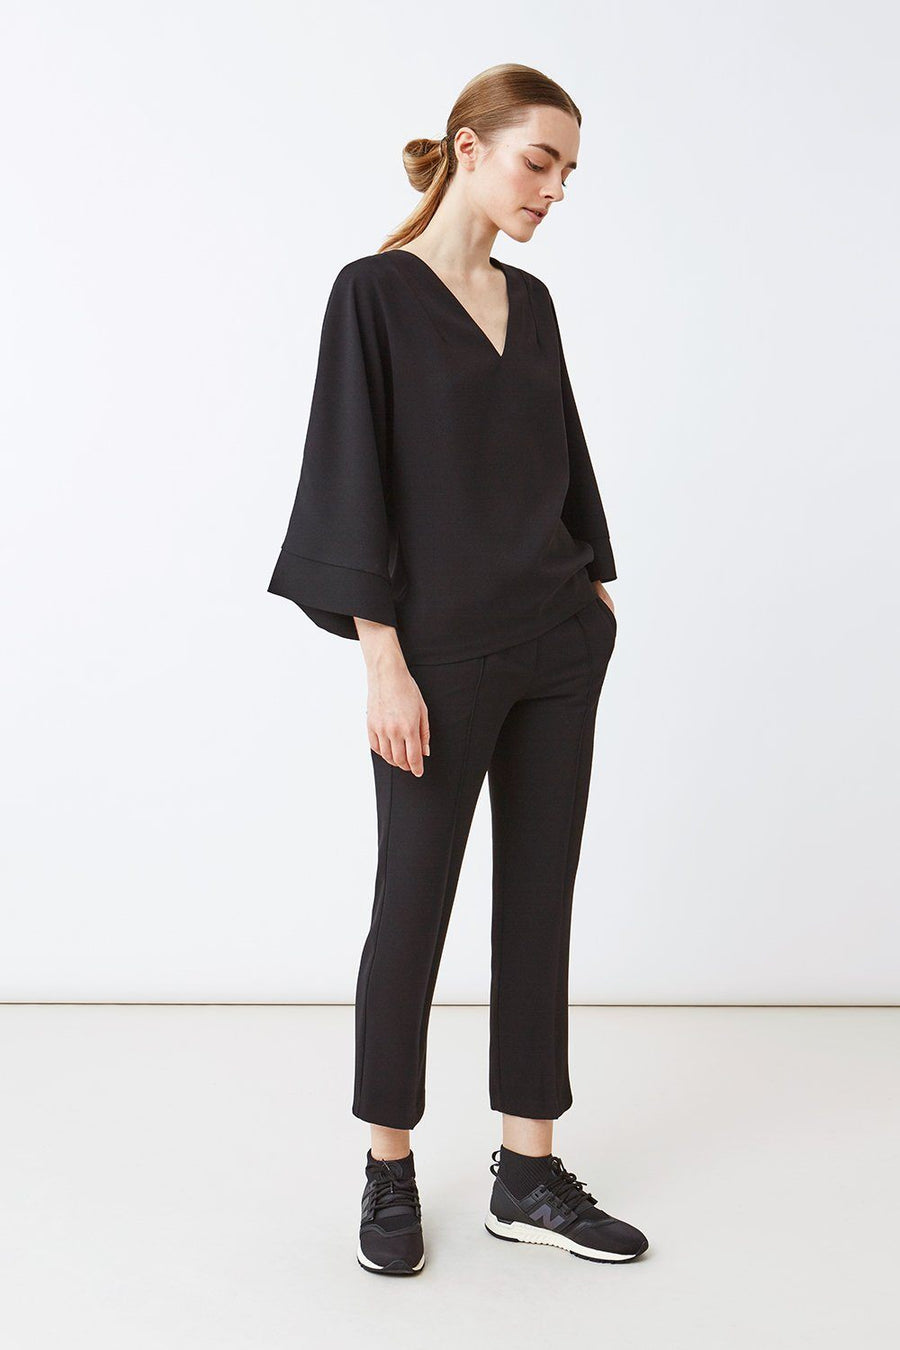 BASTILLE BLOUSE - BLACK SATIN